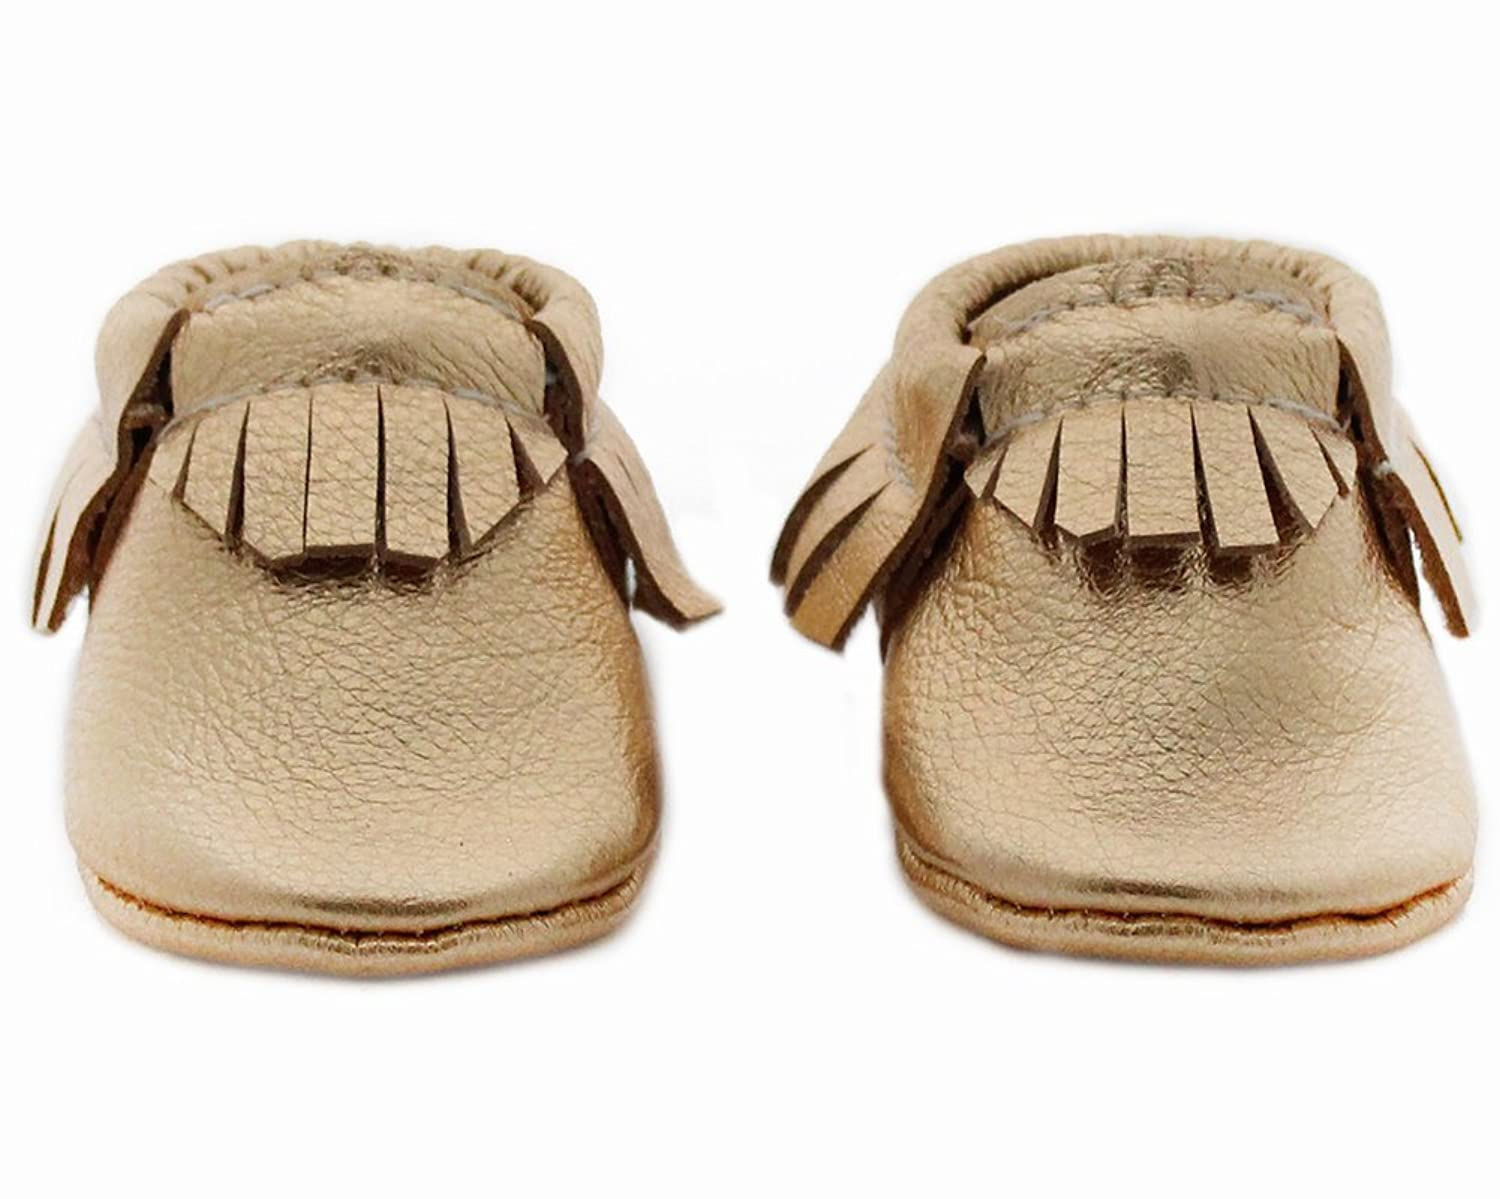 Baby Moccasins, The Coral Pear Classic Moccasin, Genuine Leather, (Infant, Toddler, Kids)